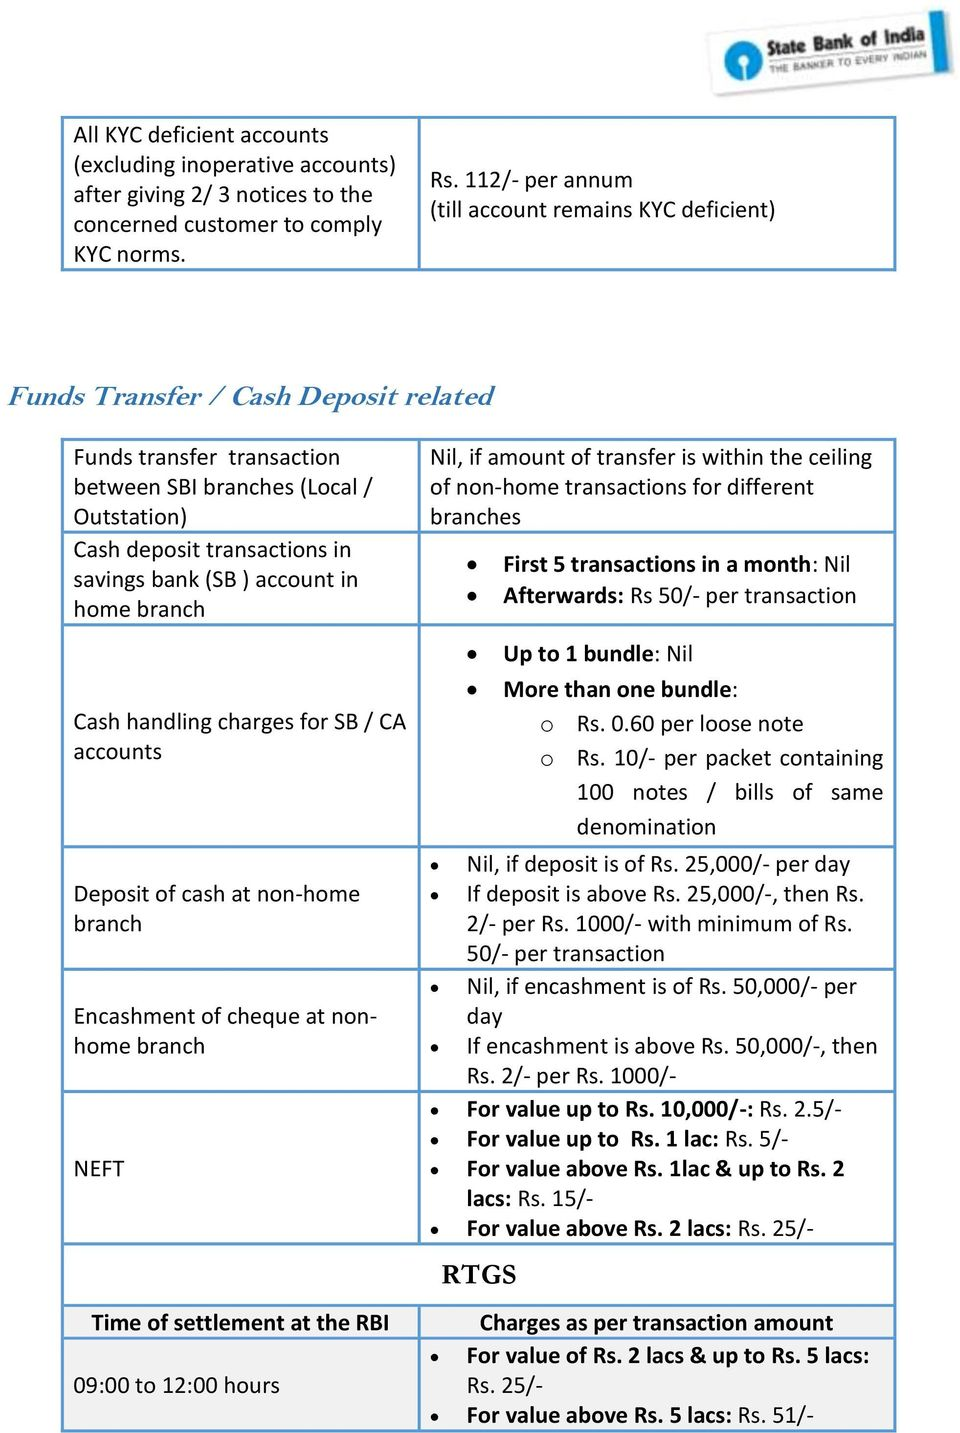 bank (SB ) account in home branch Cash handling charges for SB / CA accounts Deposit of cash at non-home branch Encashment of cheque at nonhome branch NEFT Time of settlement at the RBI 09:00 to